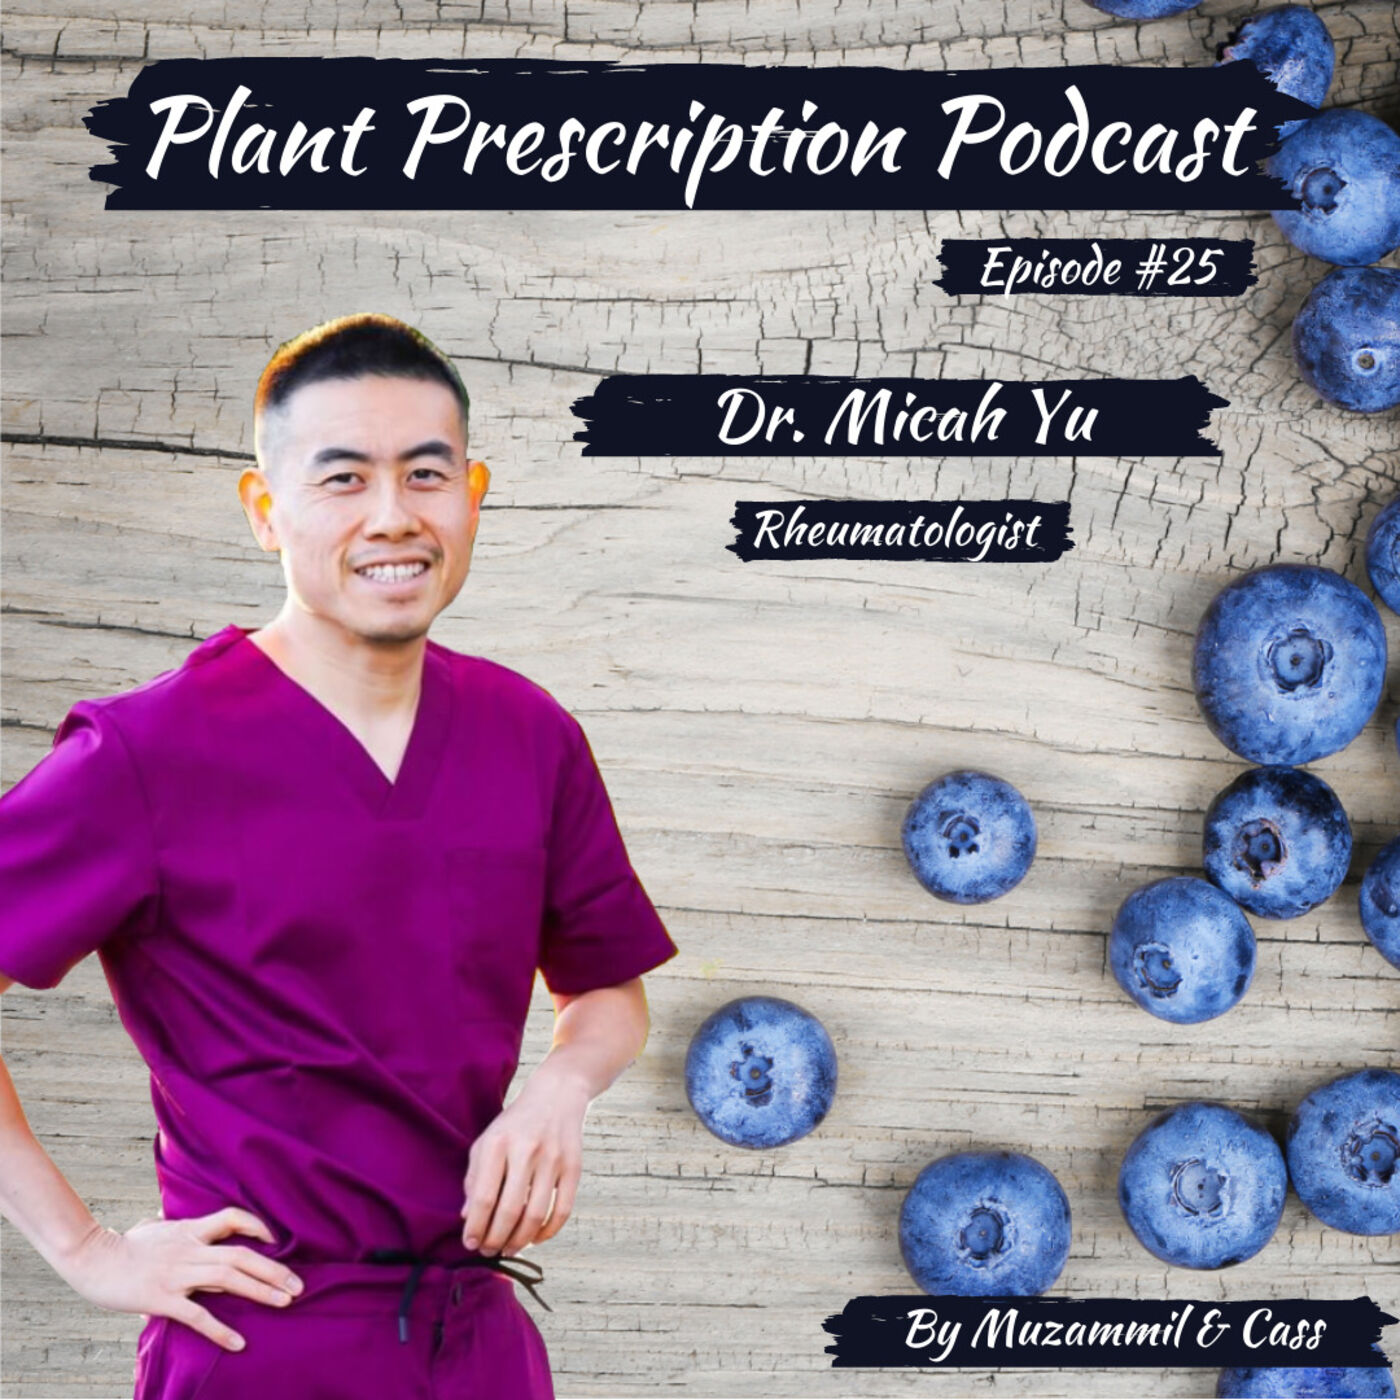 Role of diet in rheumatoid arthritis, gout and reducing systemic inflammation with Dr. Micah Yu